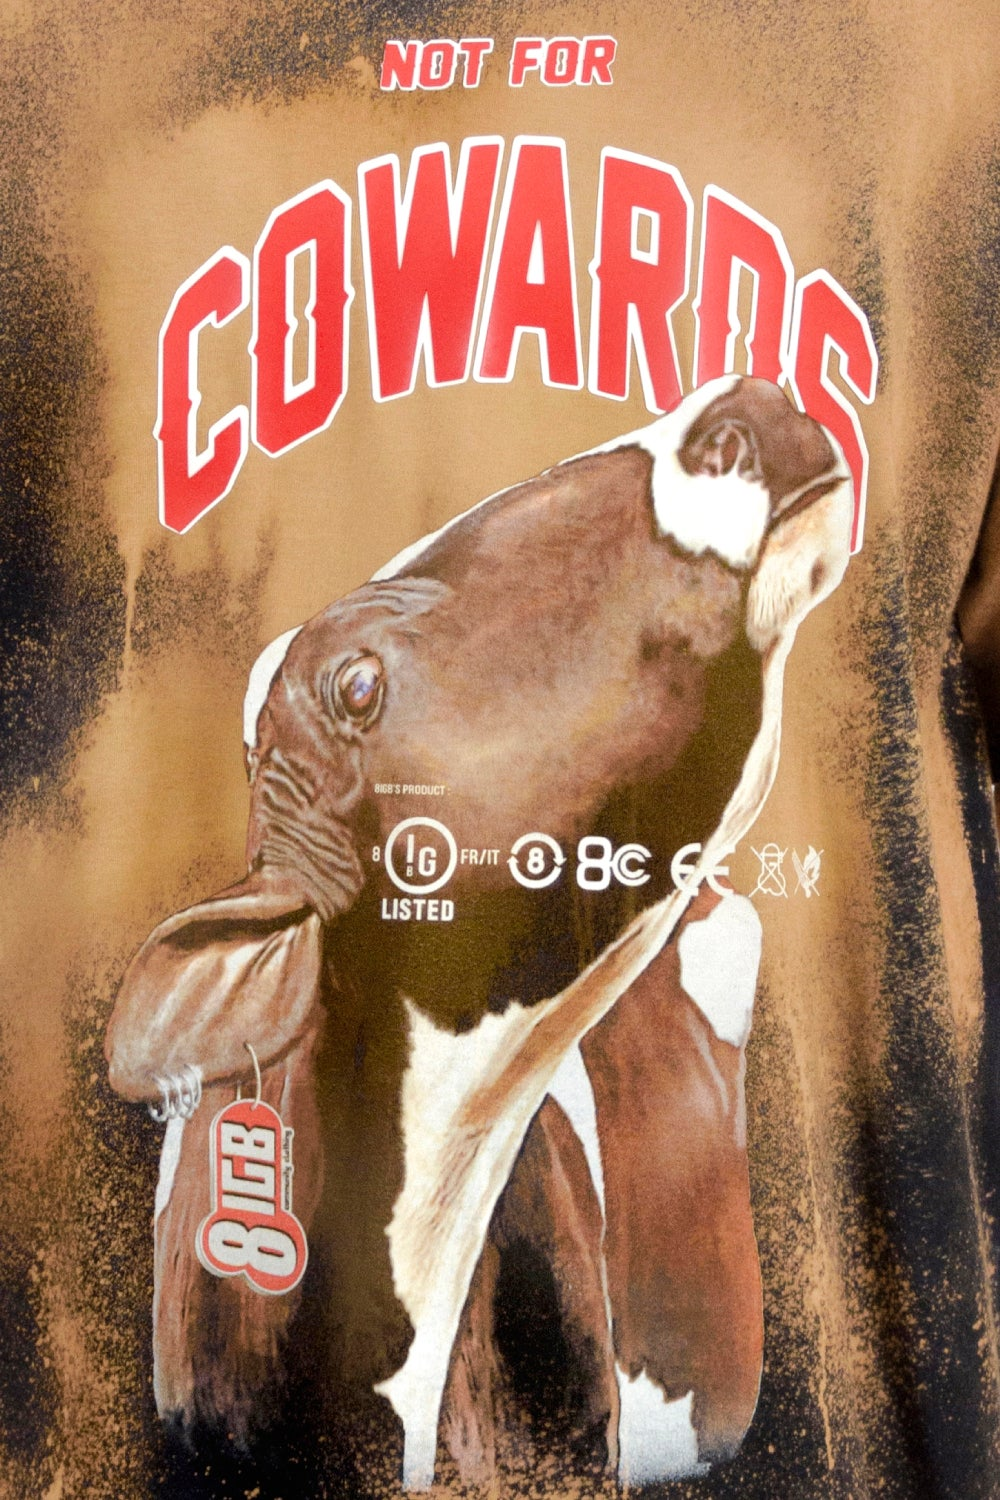 N4 COWARDS COW t-shirt bleached